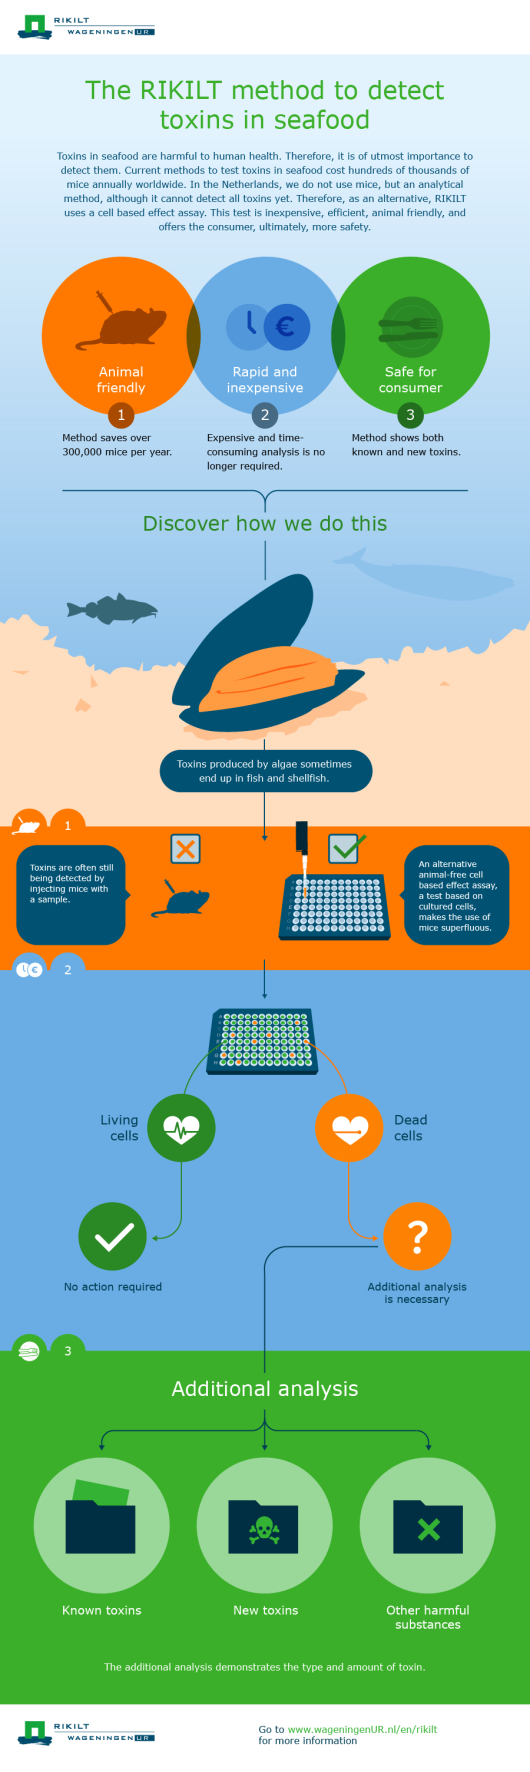 1366_RIKILT_Infographic_MarineToxine_EN_20160705_WUR WEBSITE BREED.png